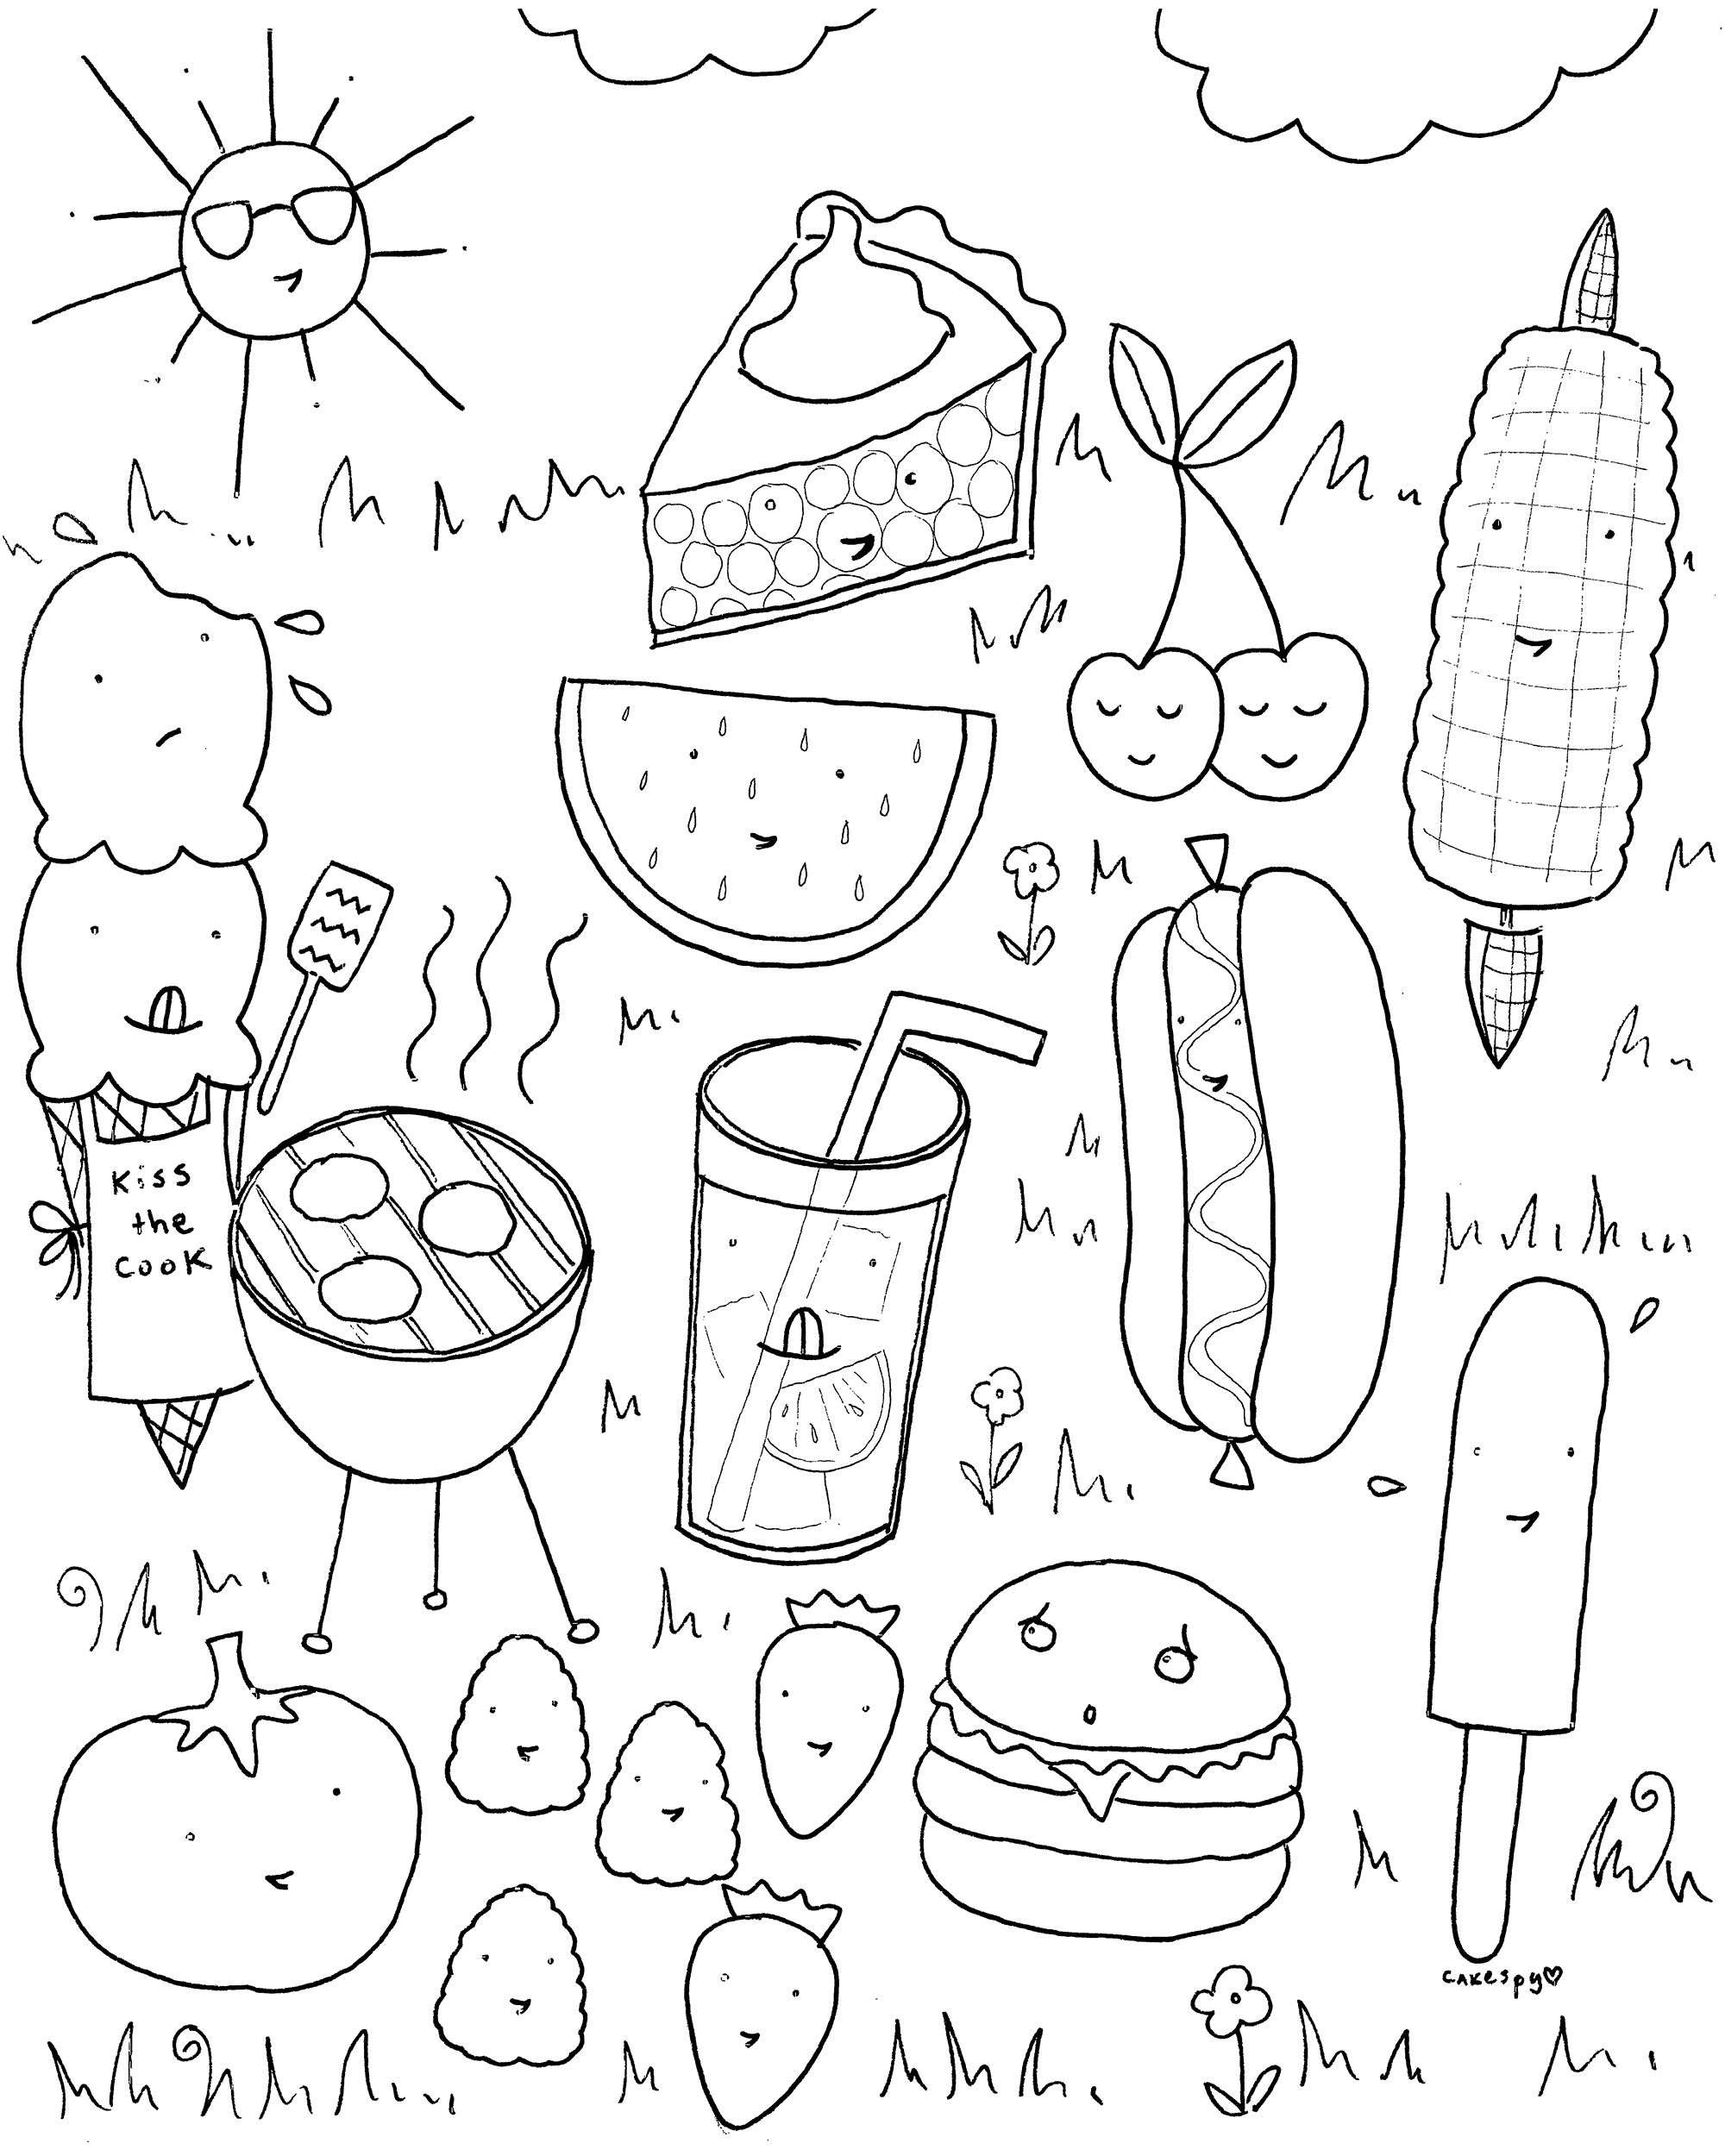 Cake Coloring Pages  to Print 11i - Free For kids